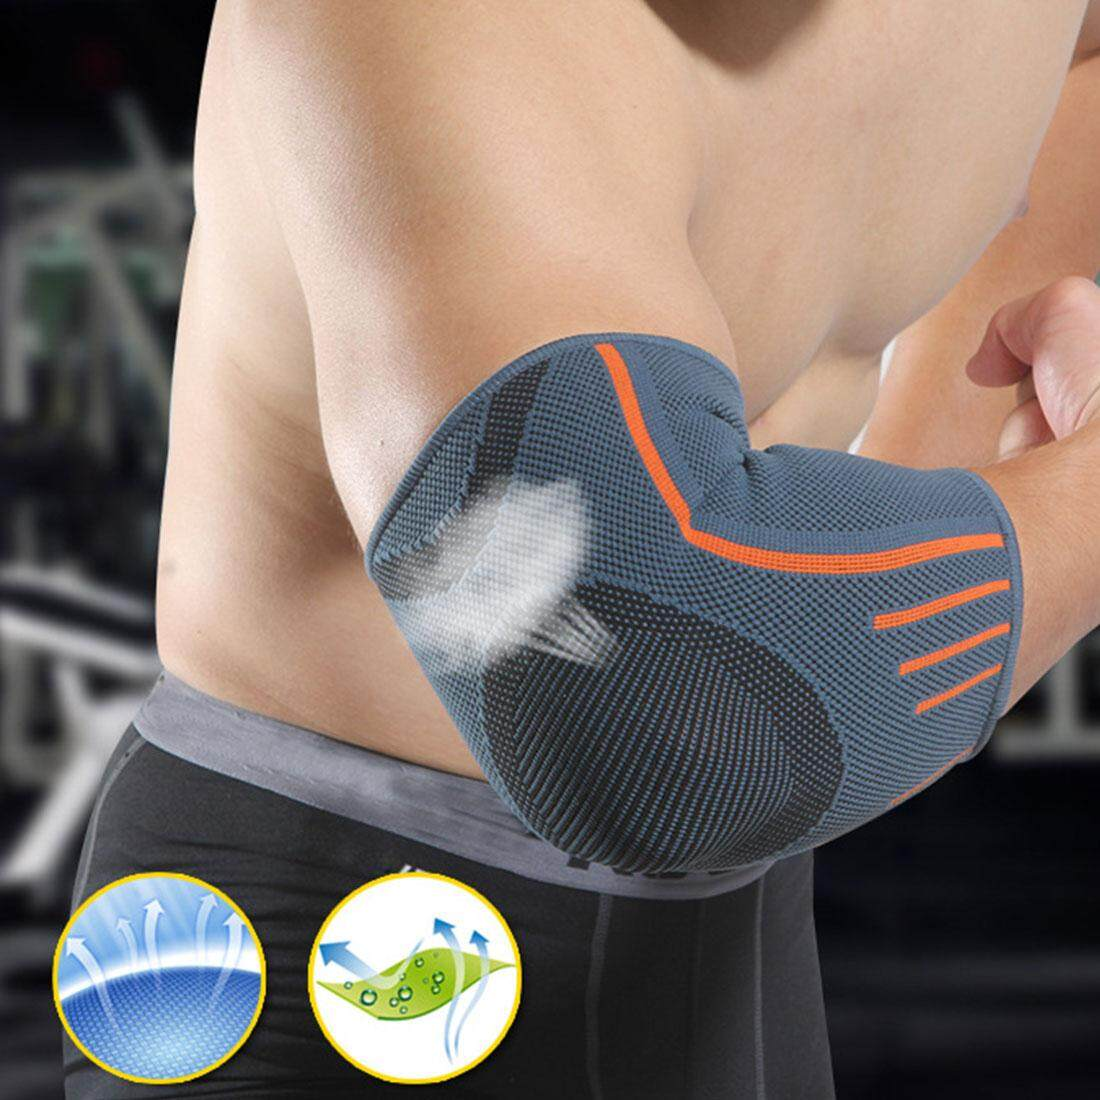 1PCS Professional Elbow Brace Support Sports Safety Elbow Protector Elastic Bandage Sweat Absorbing Elbow Pads Guard